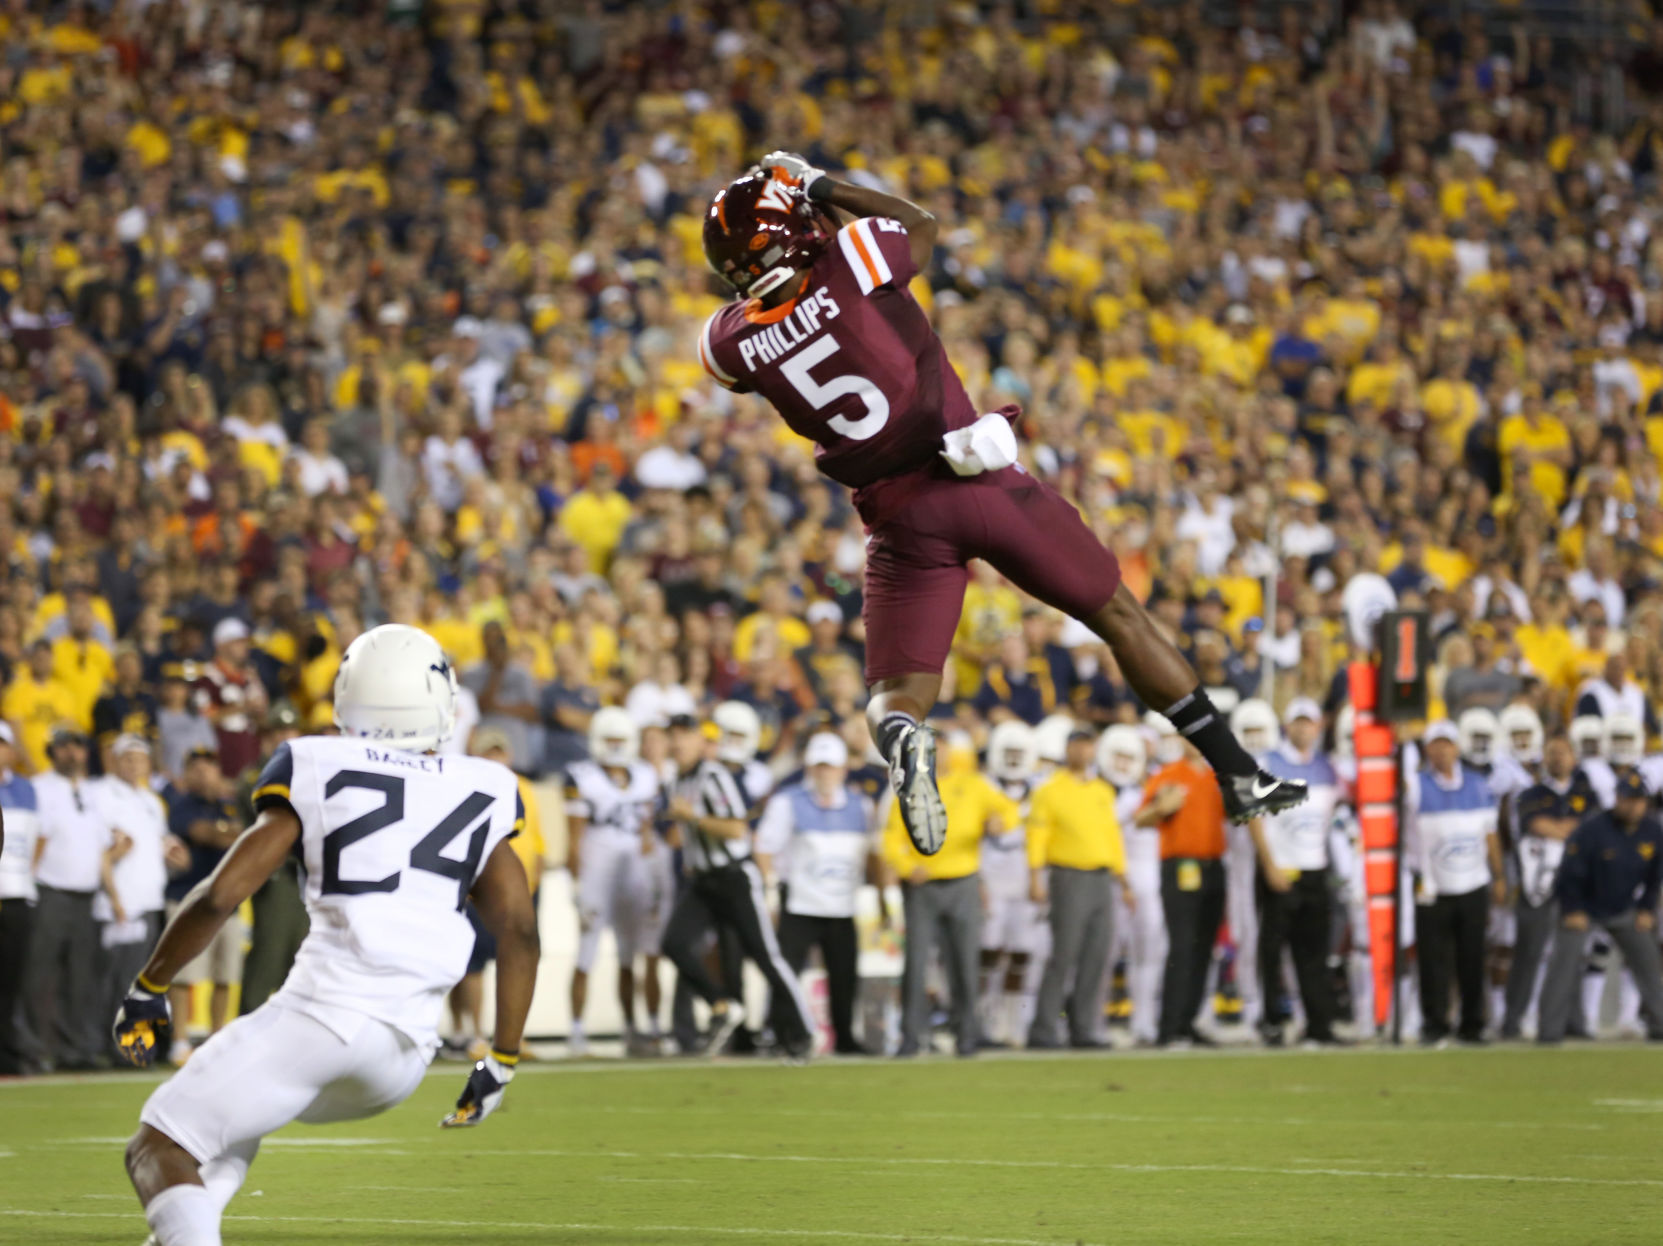 Virginia Tech holds on to beat West Virginia 31-24